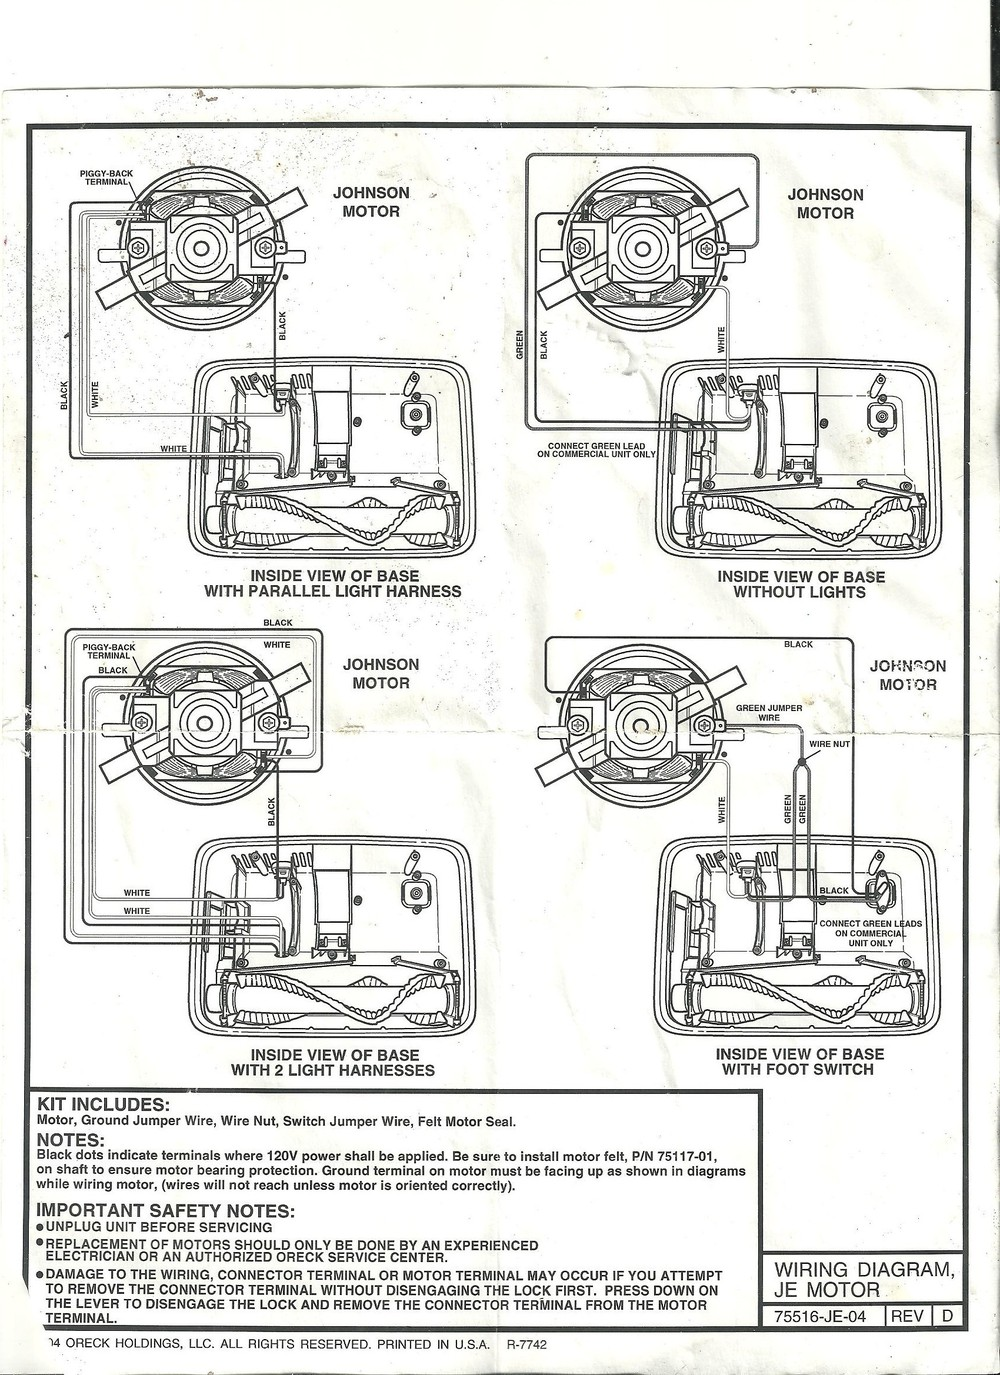 [SCHEMATICS_4JK]  Oreck Xl 9000 Wiring Diagram - Boxster Headlight Switch Wiring Diagram for Wiring  Diagram Schematics | Oreck Touch Wiring Diagram |  | Wiring Diagram Schematics